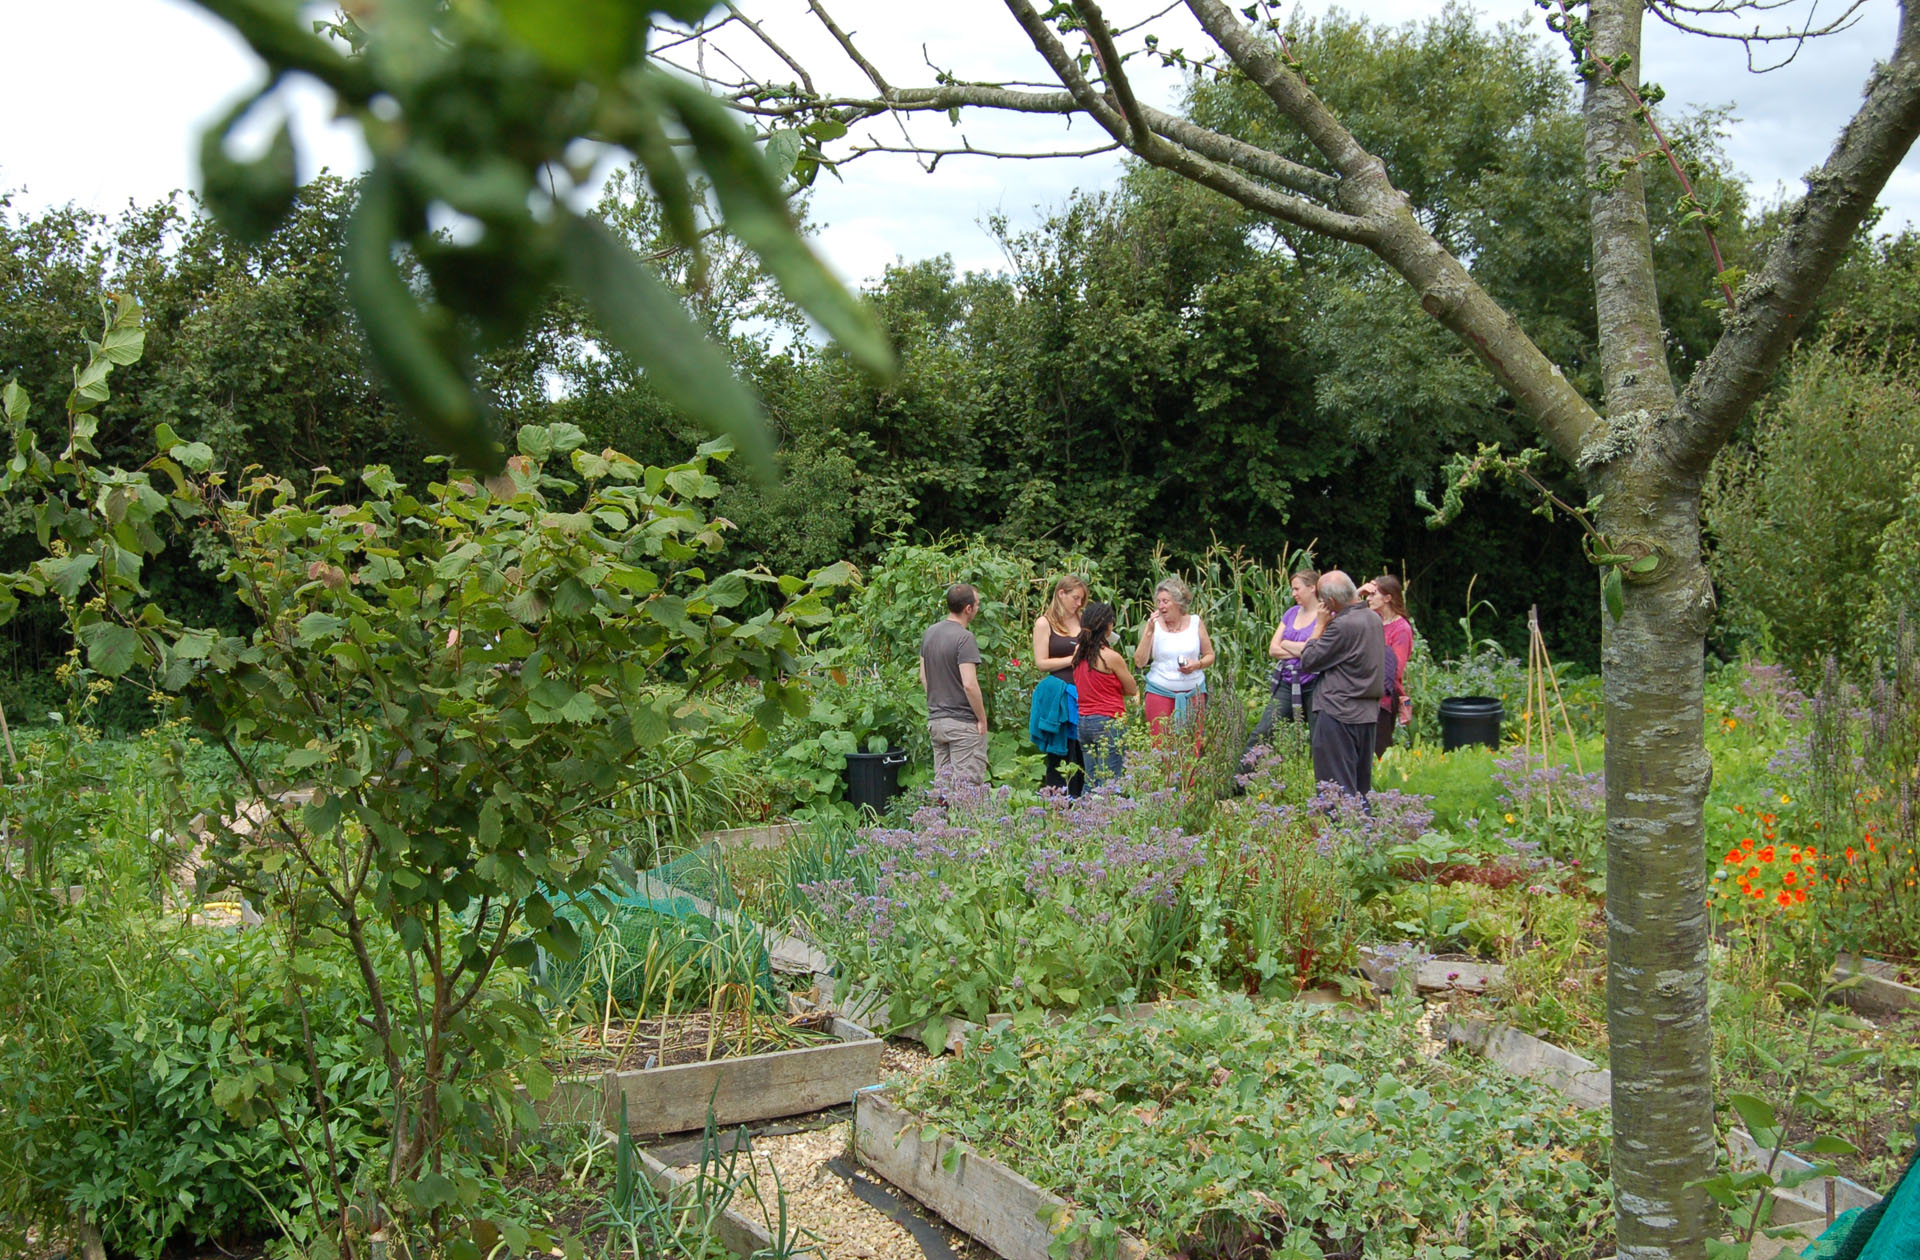 Pat teaching in veg garden from distance